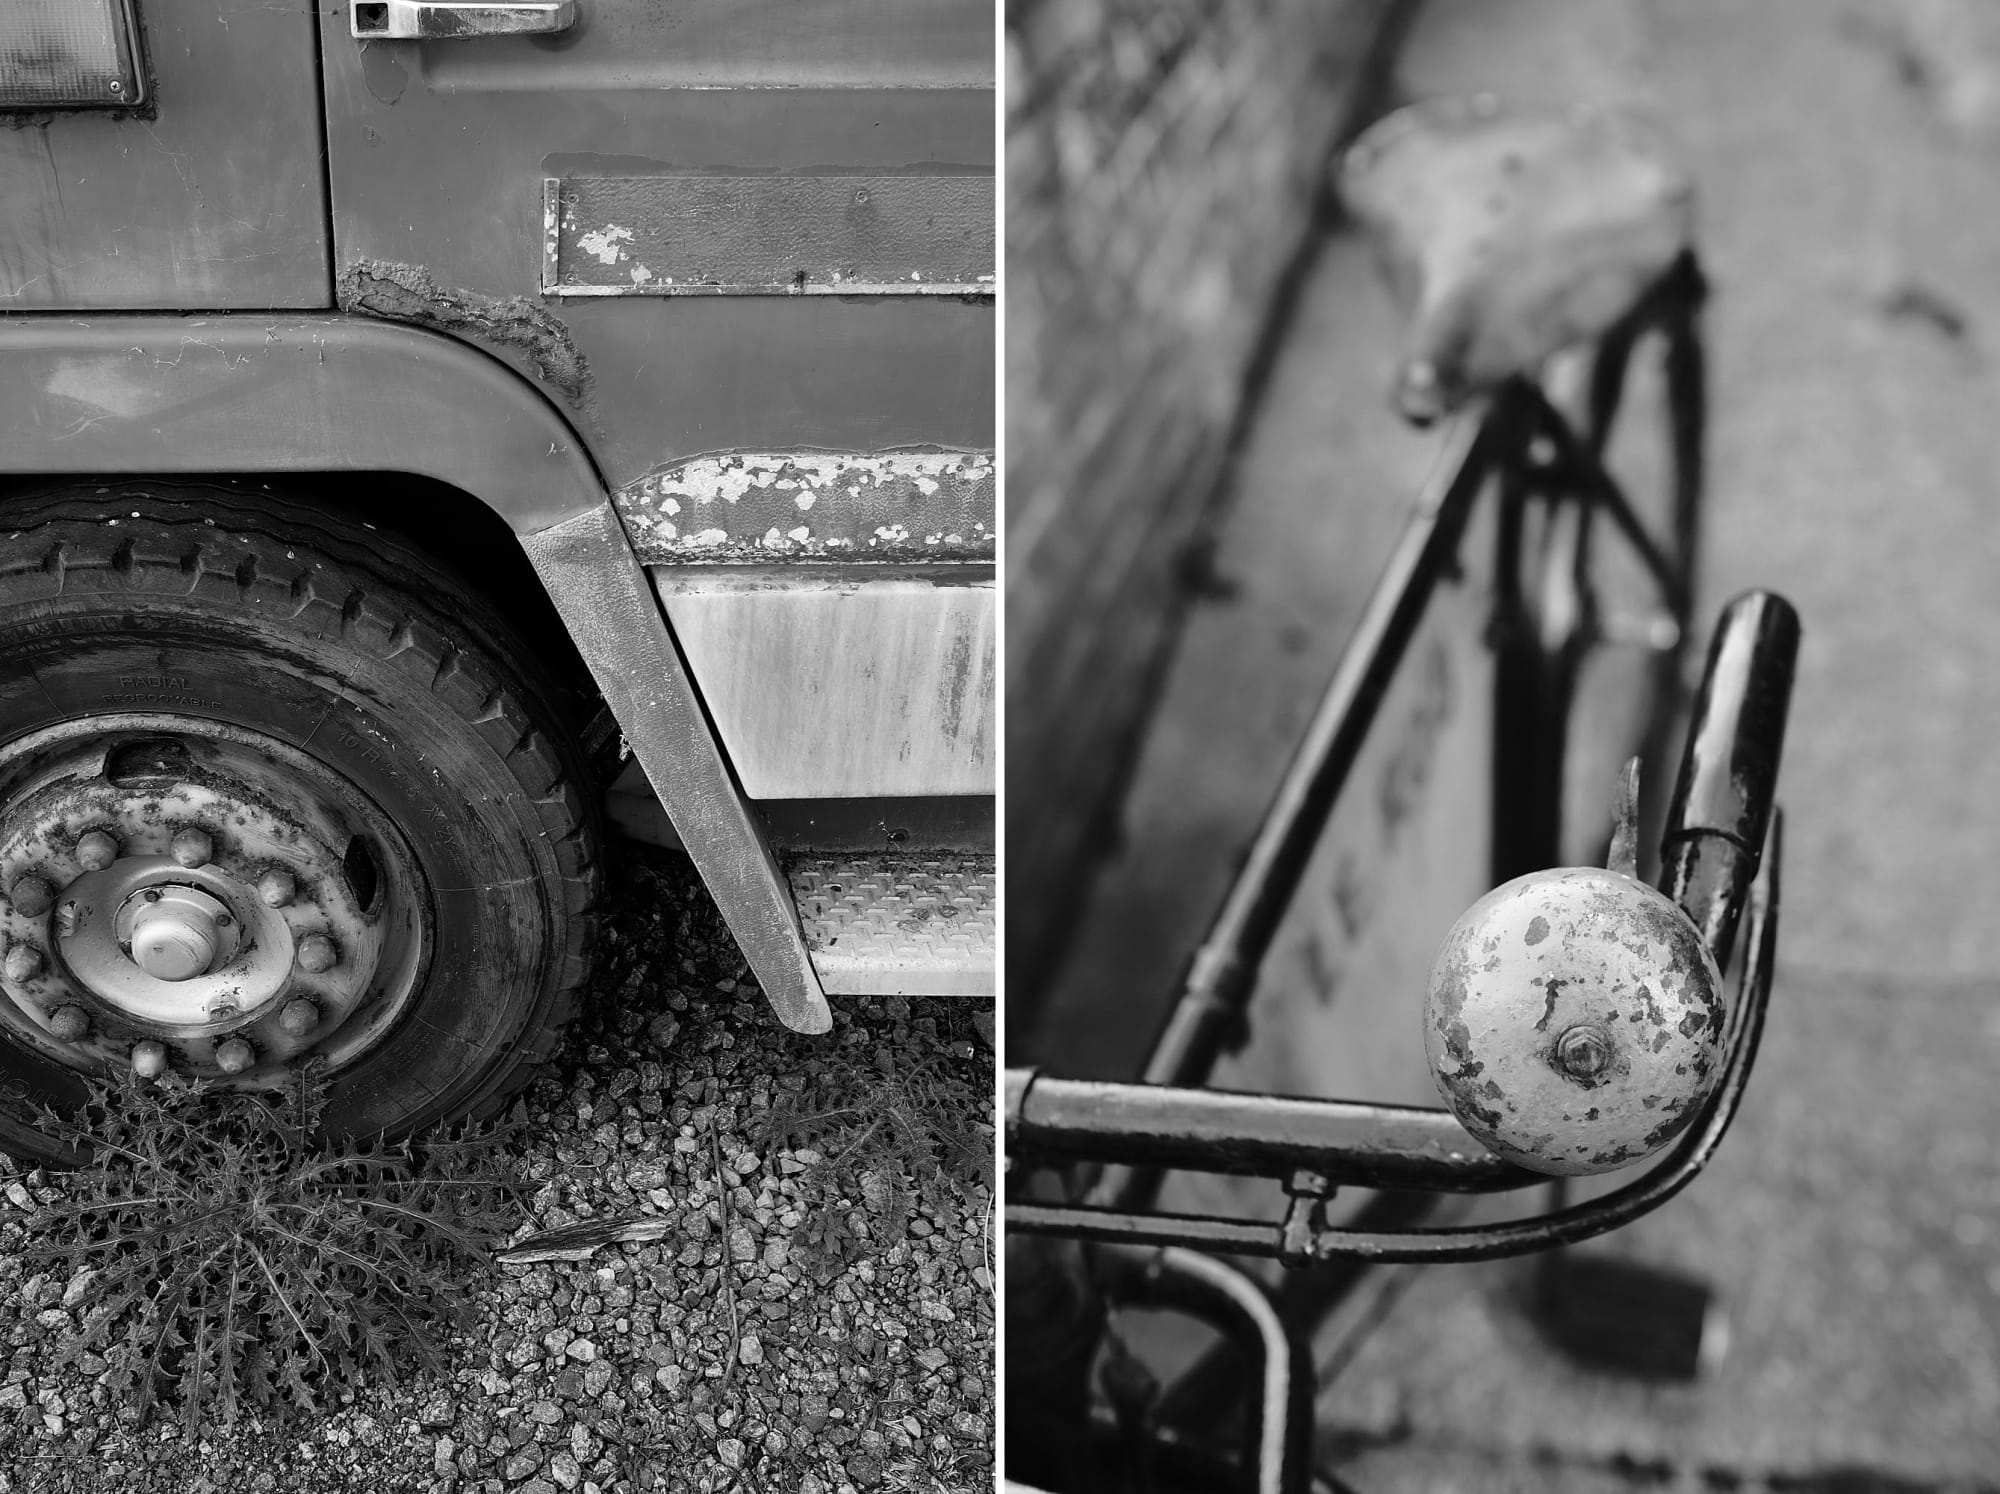 derelict fire engine / old bike bell